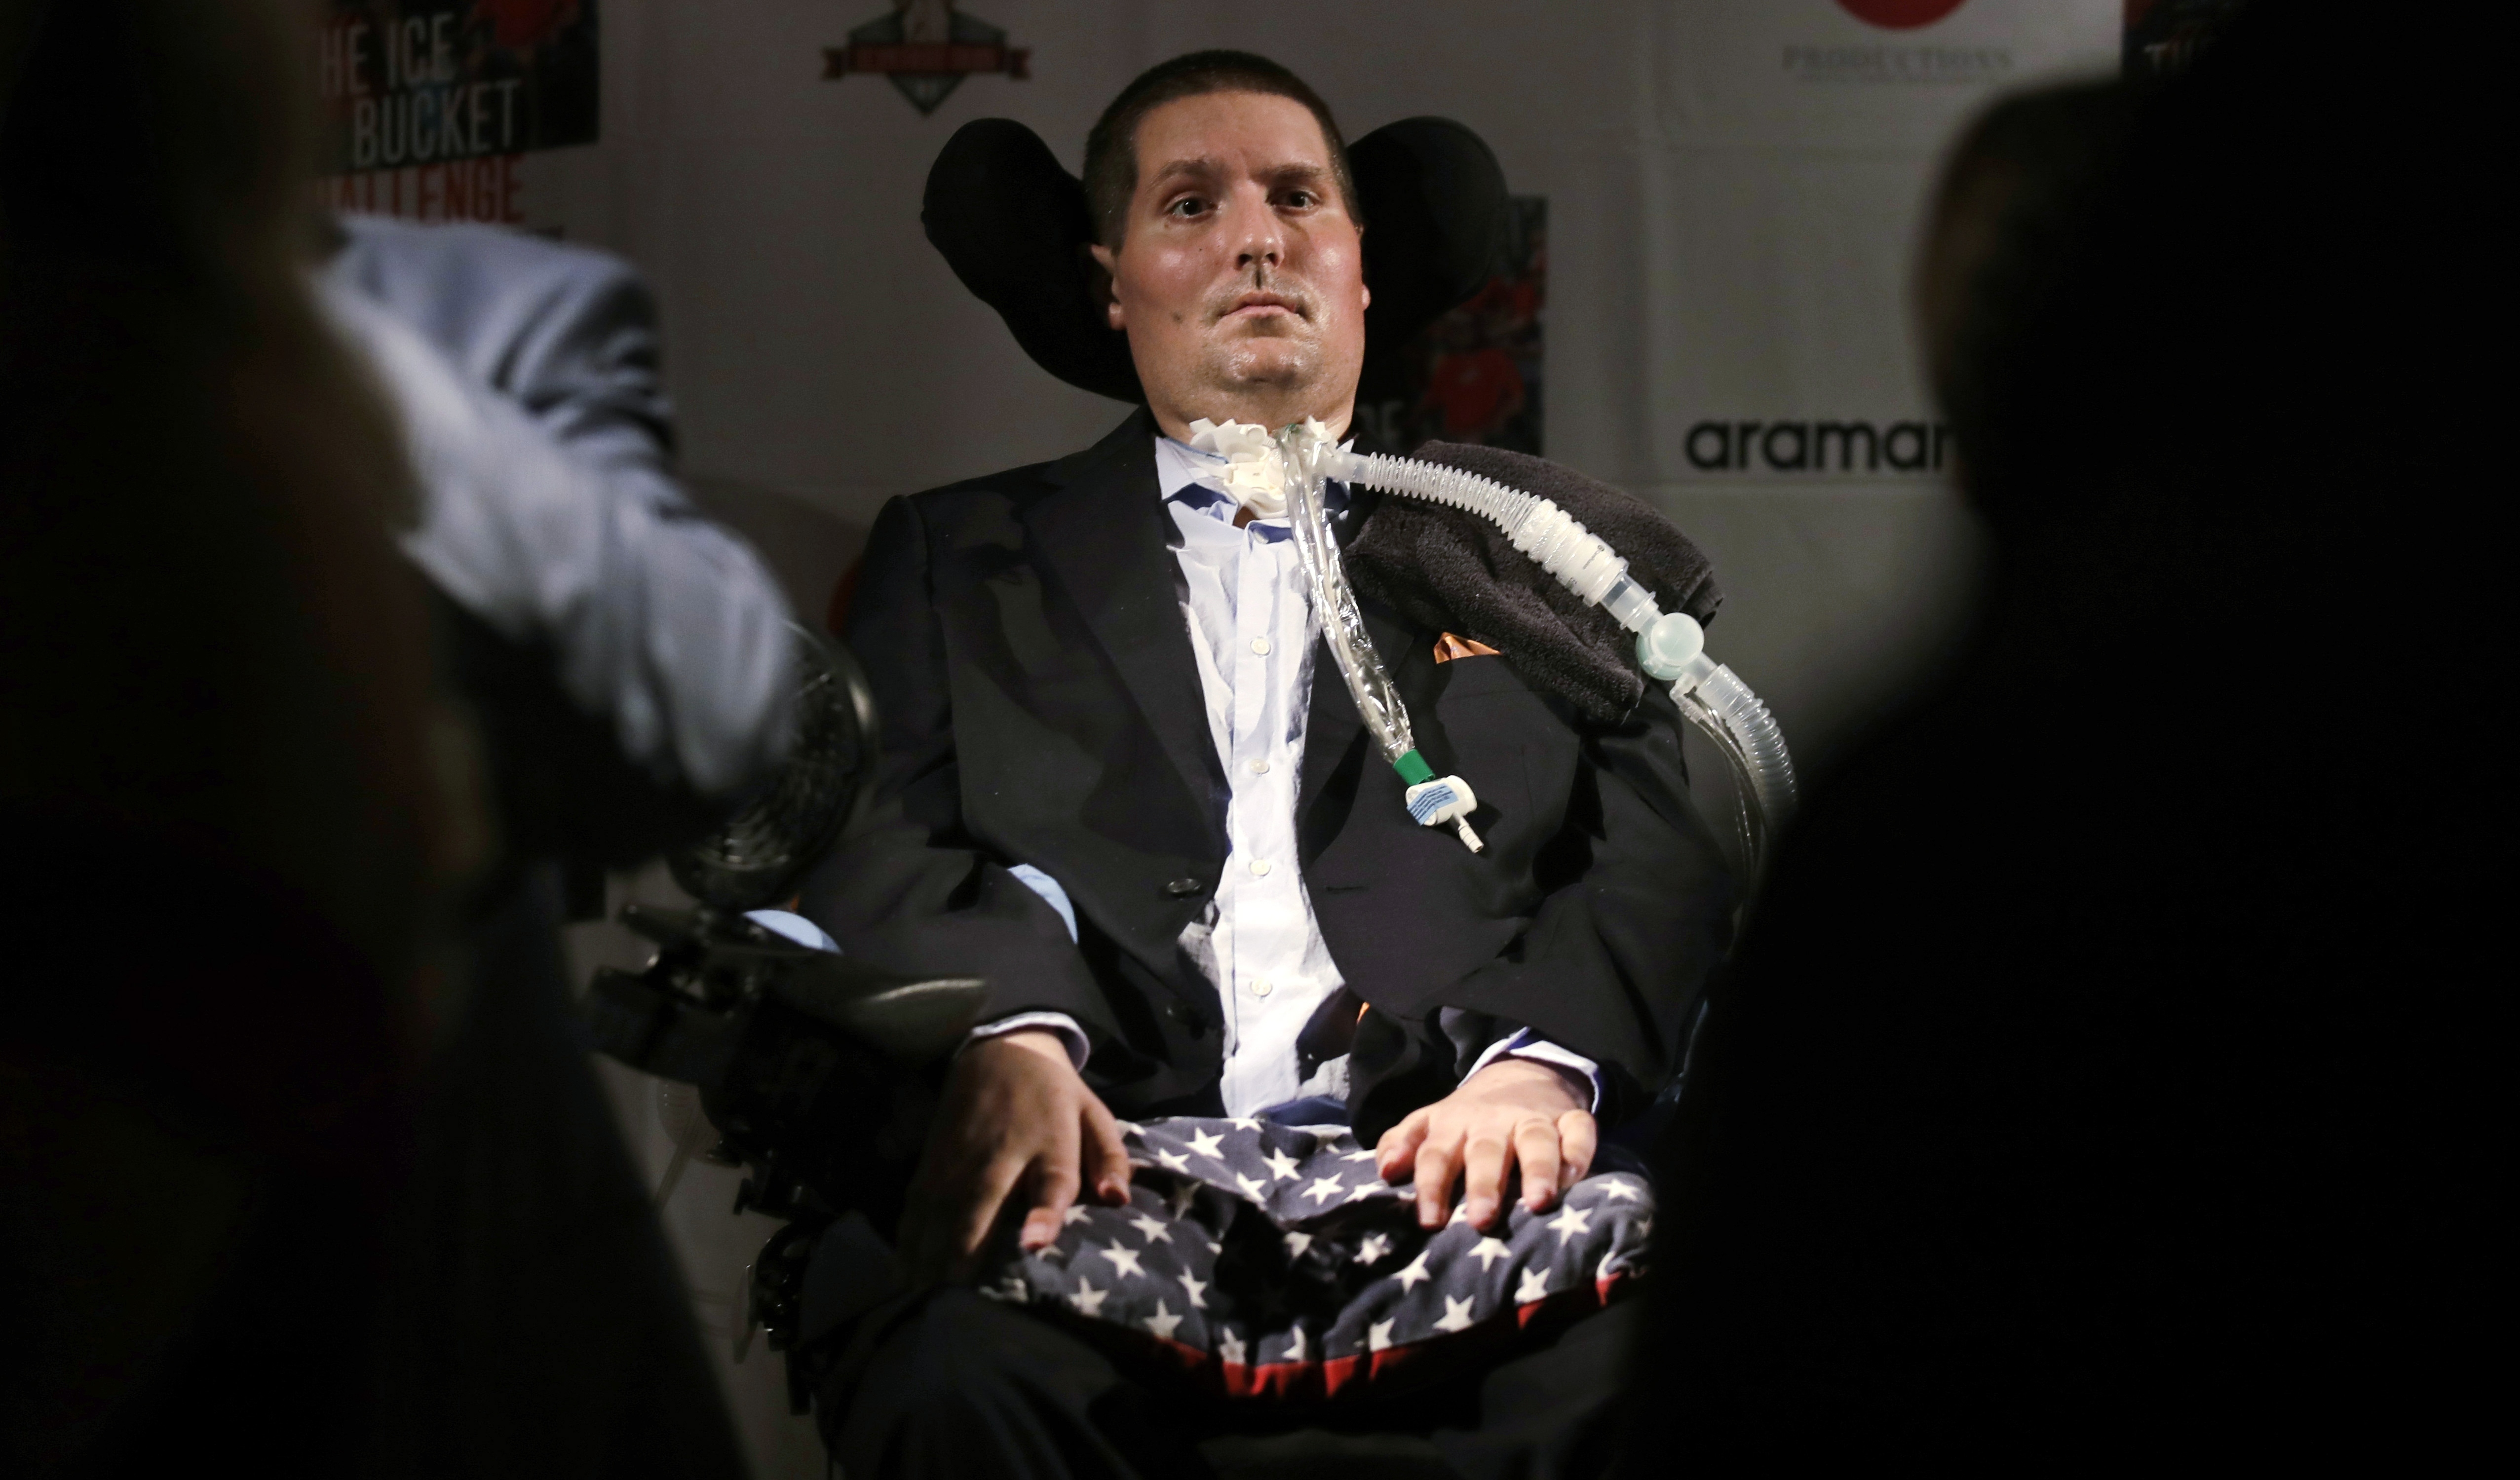 PeteFrates, a former college baseball player whose battle with Lou Gehrig's disease helped inspire the ALS ice bucket challenge that has raised more than $200 million worldwide, died Monday, Dec. 9, 2019. He was 34.